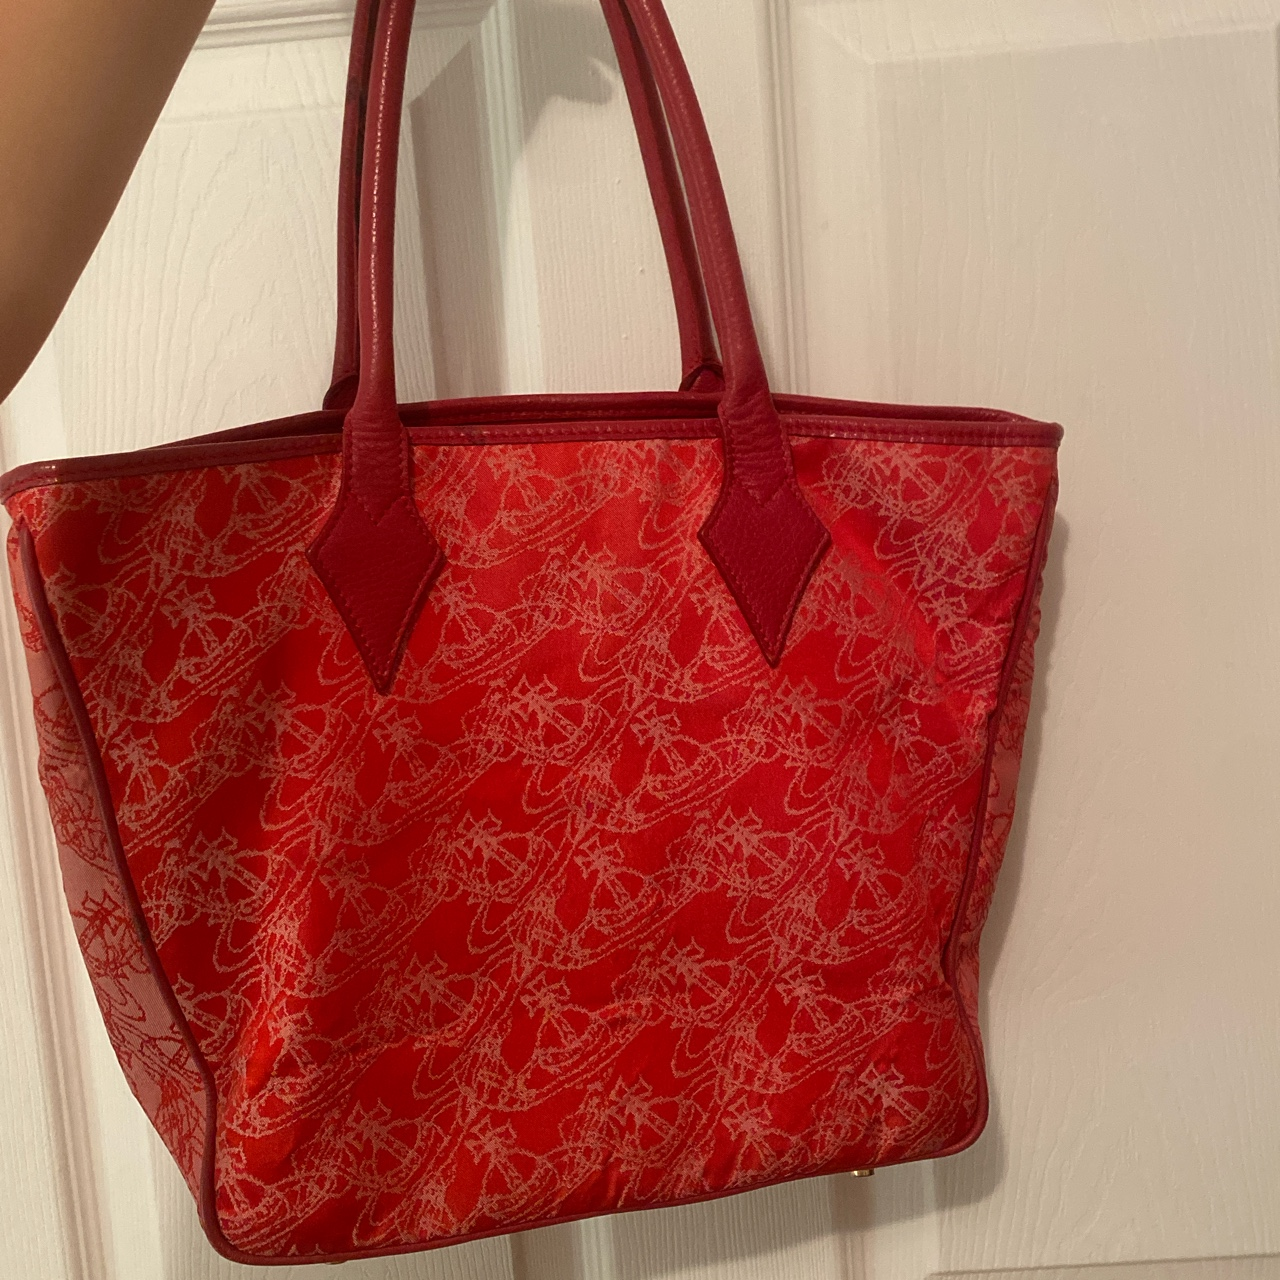 Product Image 1 - red vivienne westwood bag! condition